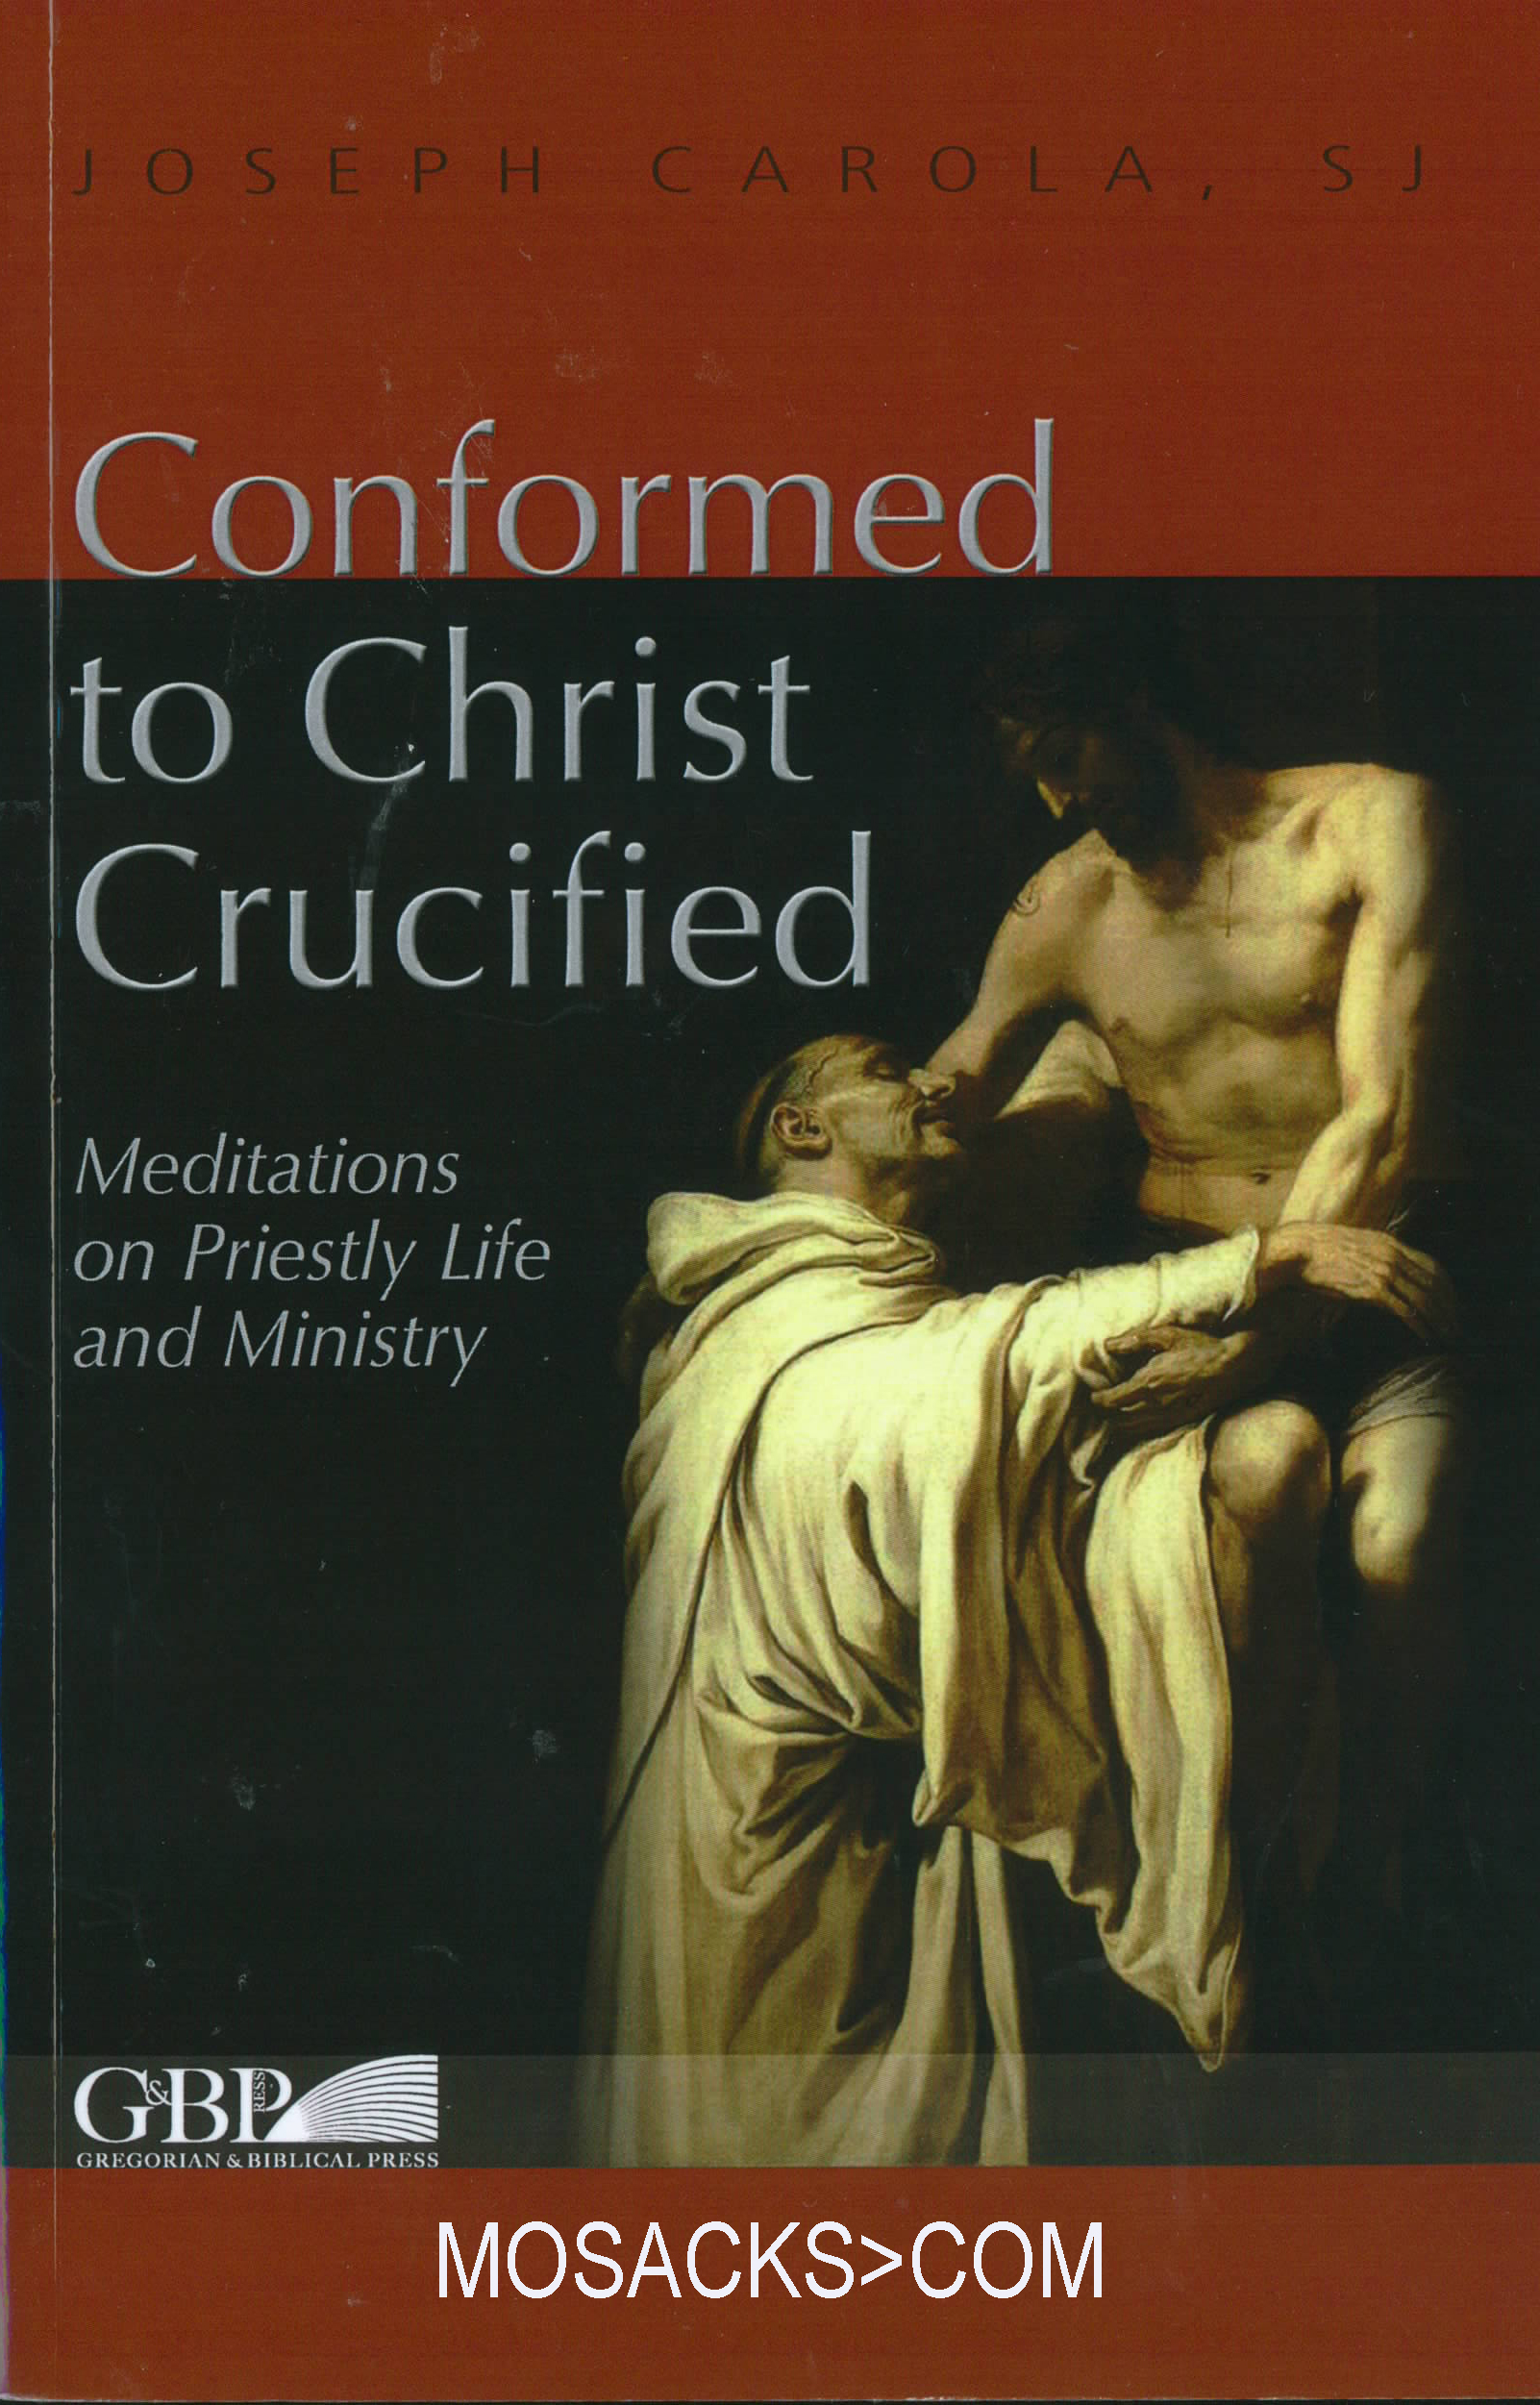 Conformed to Christ Crucified by Joseph Carola, S.J. 445-91529